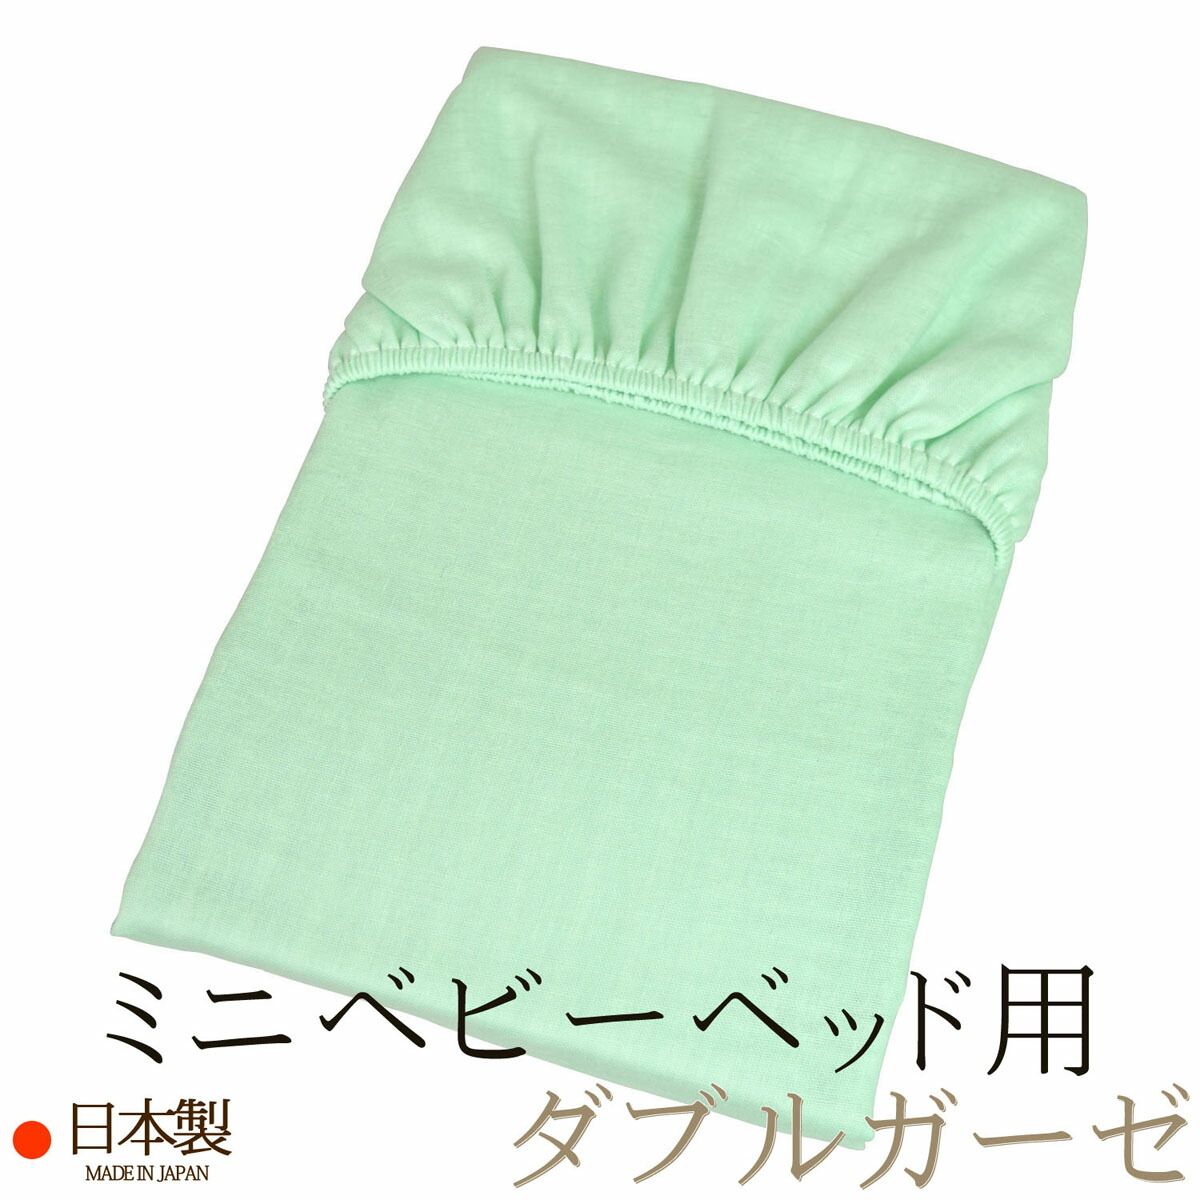 Kubota cotton 100% [M service 3/8] made in sheet (for 60*90*5-6cm for the  mini-crib) green double gauze Japan for the futon with floor